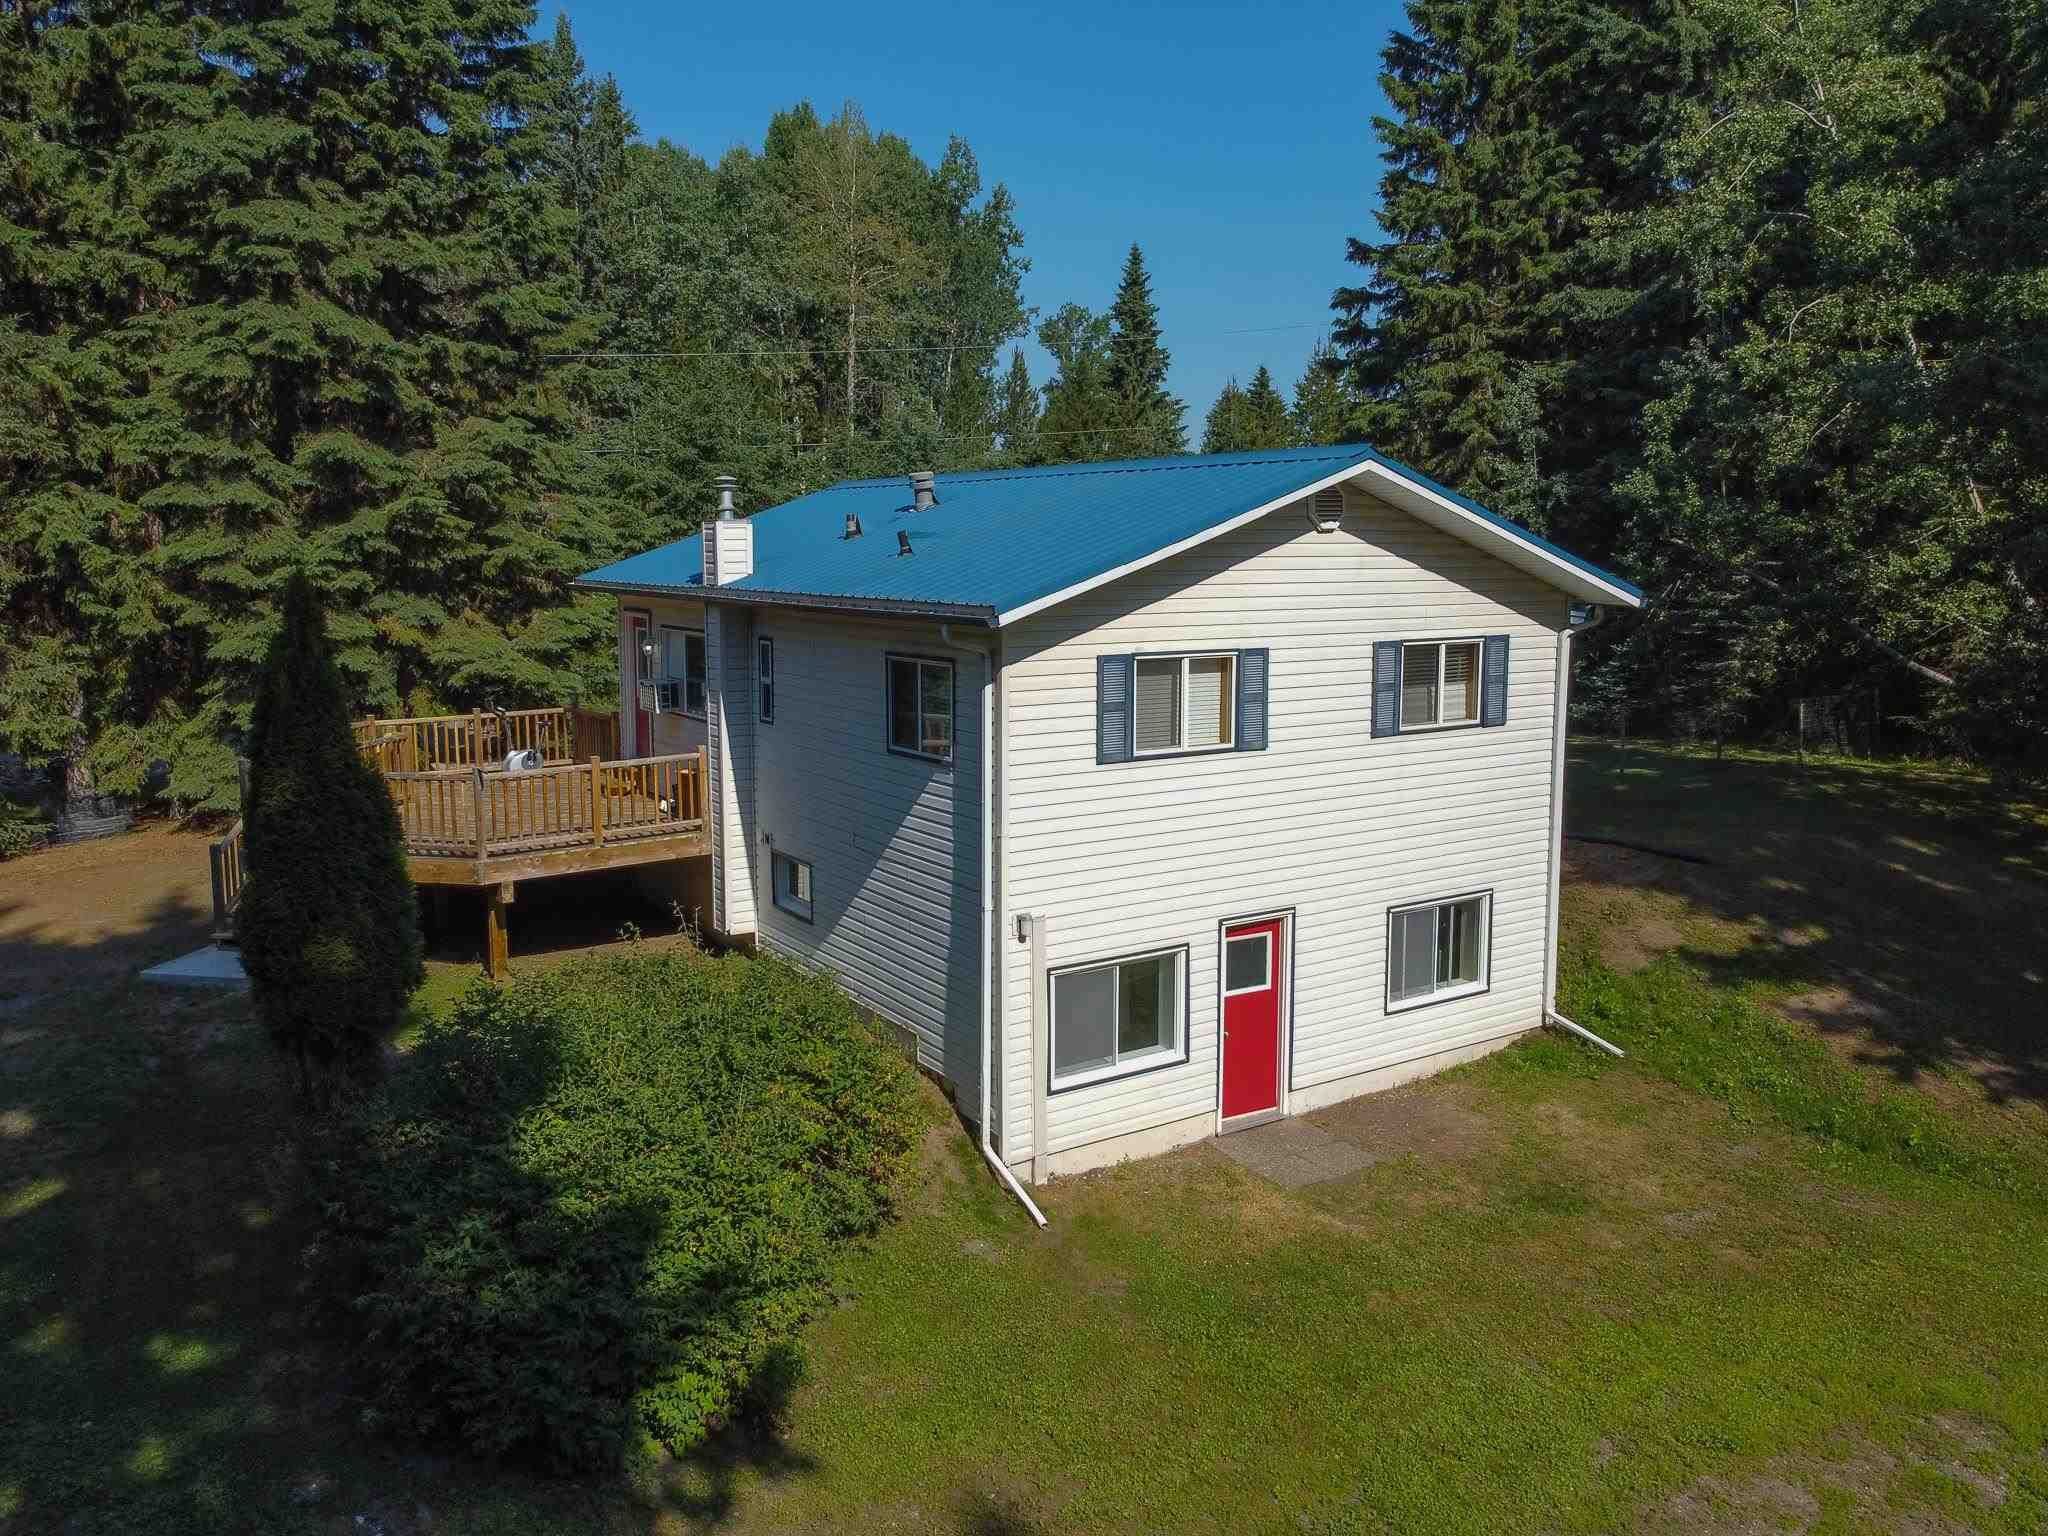 """Main Photo: 3700 NAISMITH Crescent in Prince George: Buckhorn House for sale in """"BUCKHORN"""" (PG Rural South (Zone 78))  : MLS®# R2597858"""